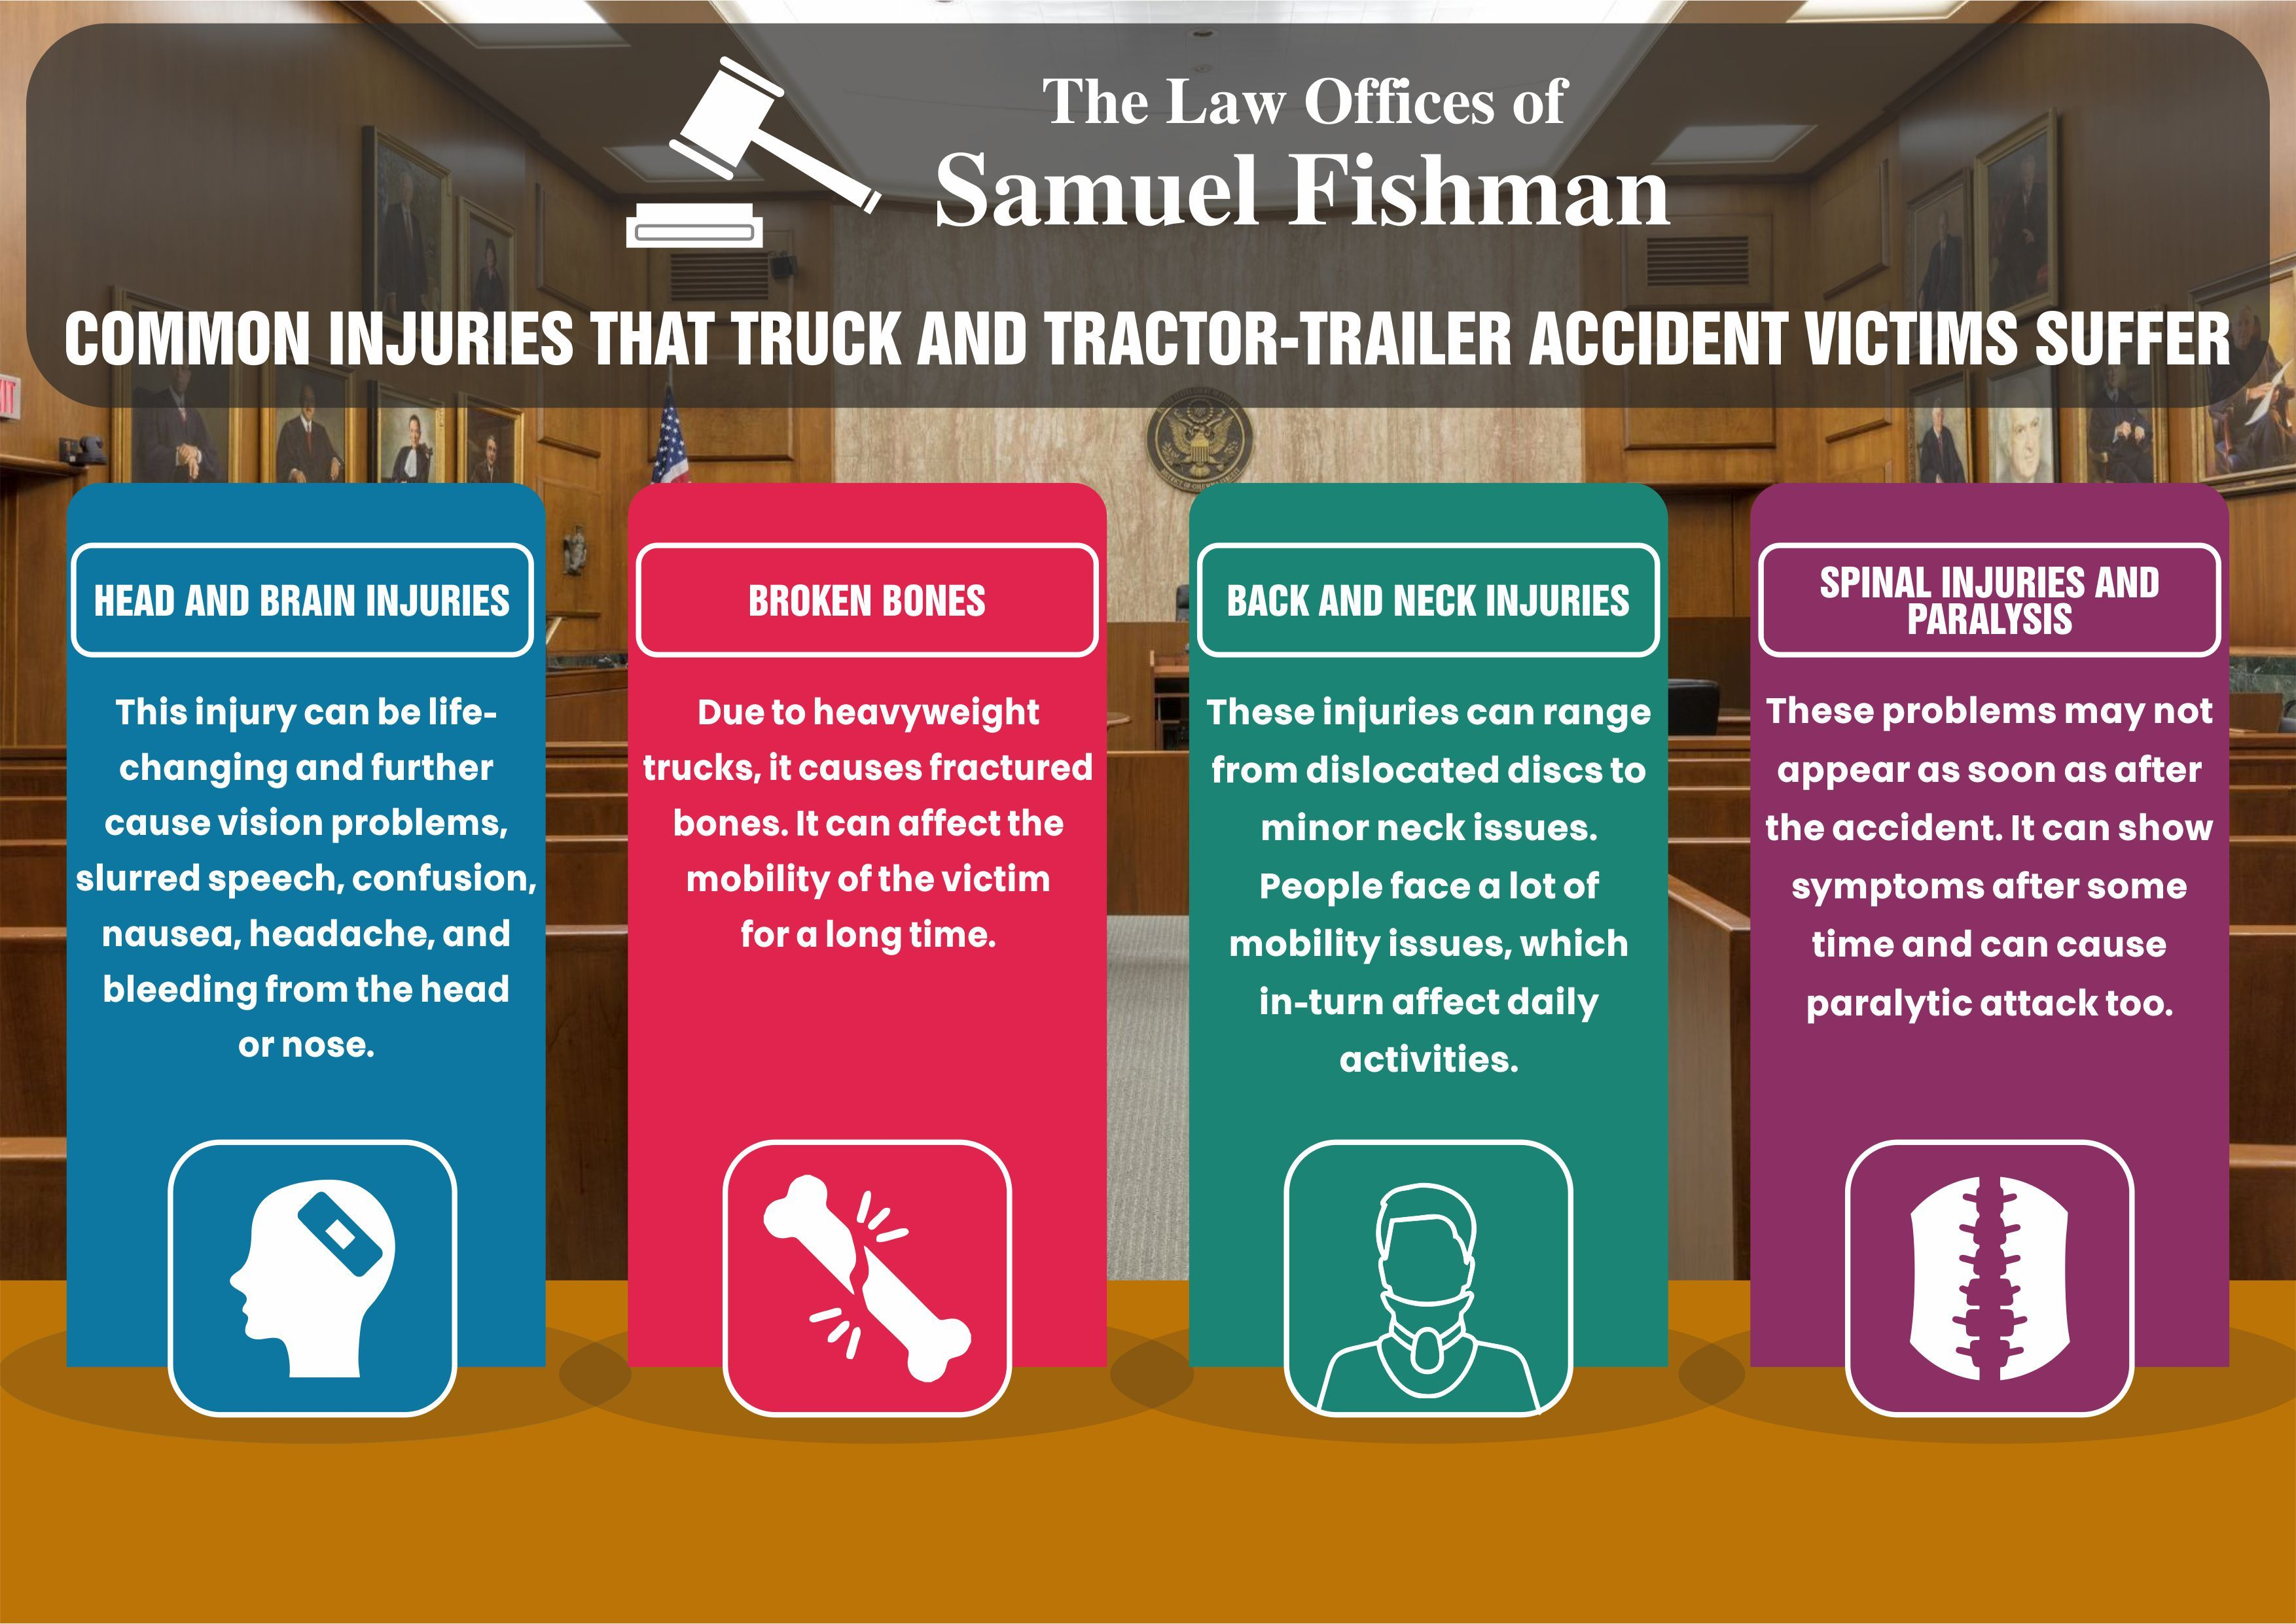 Common Injuries That Trick And Tractor Trailer Accident Victims Suffer In 2020 Tractor Trailer Accident Spinal Injury Neck Injury